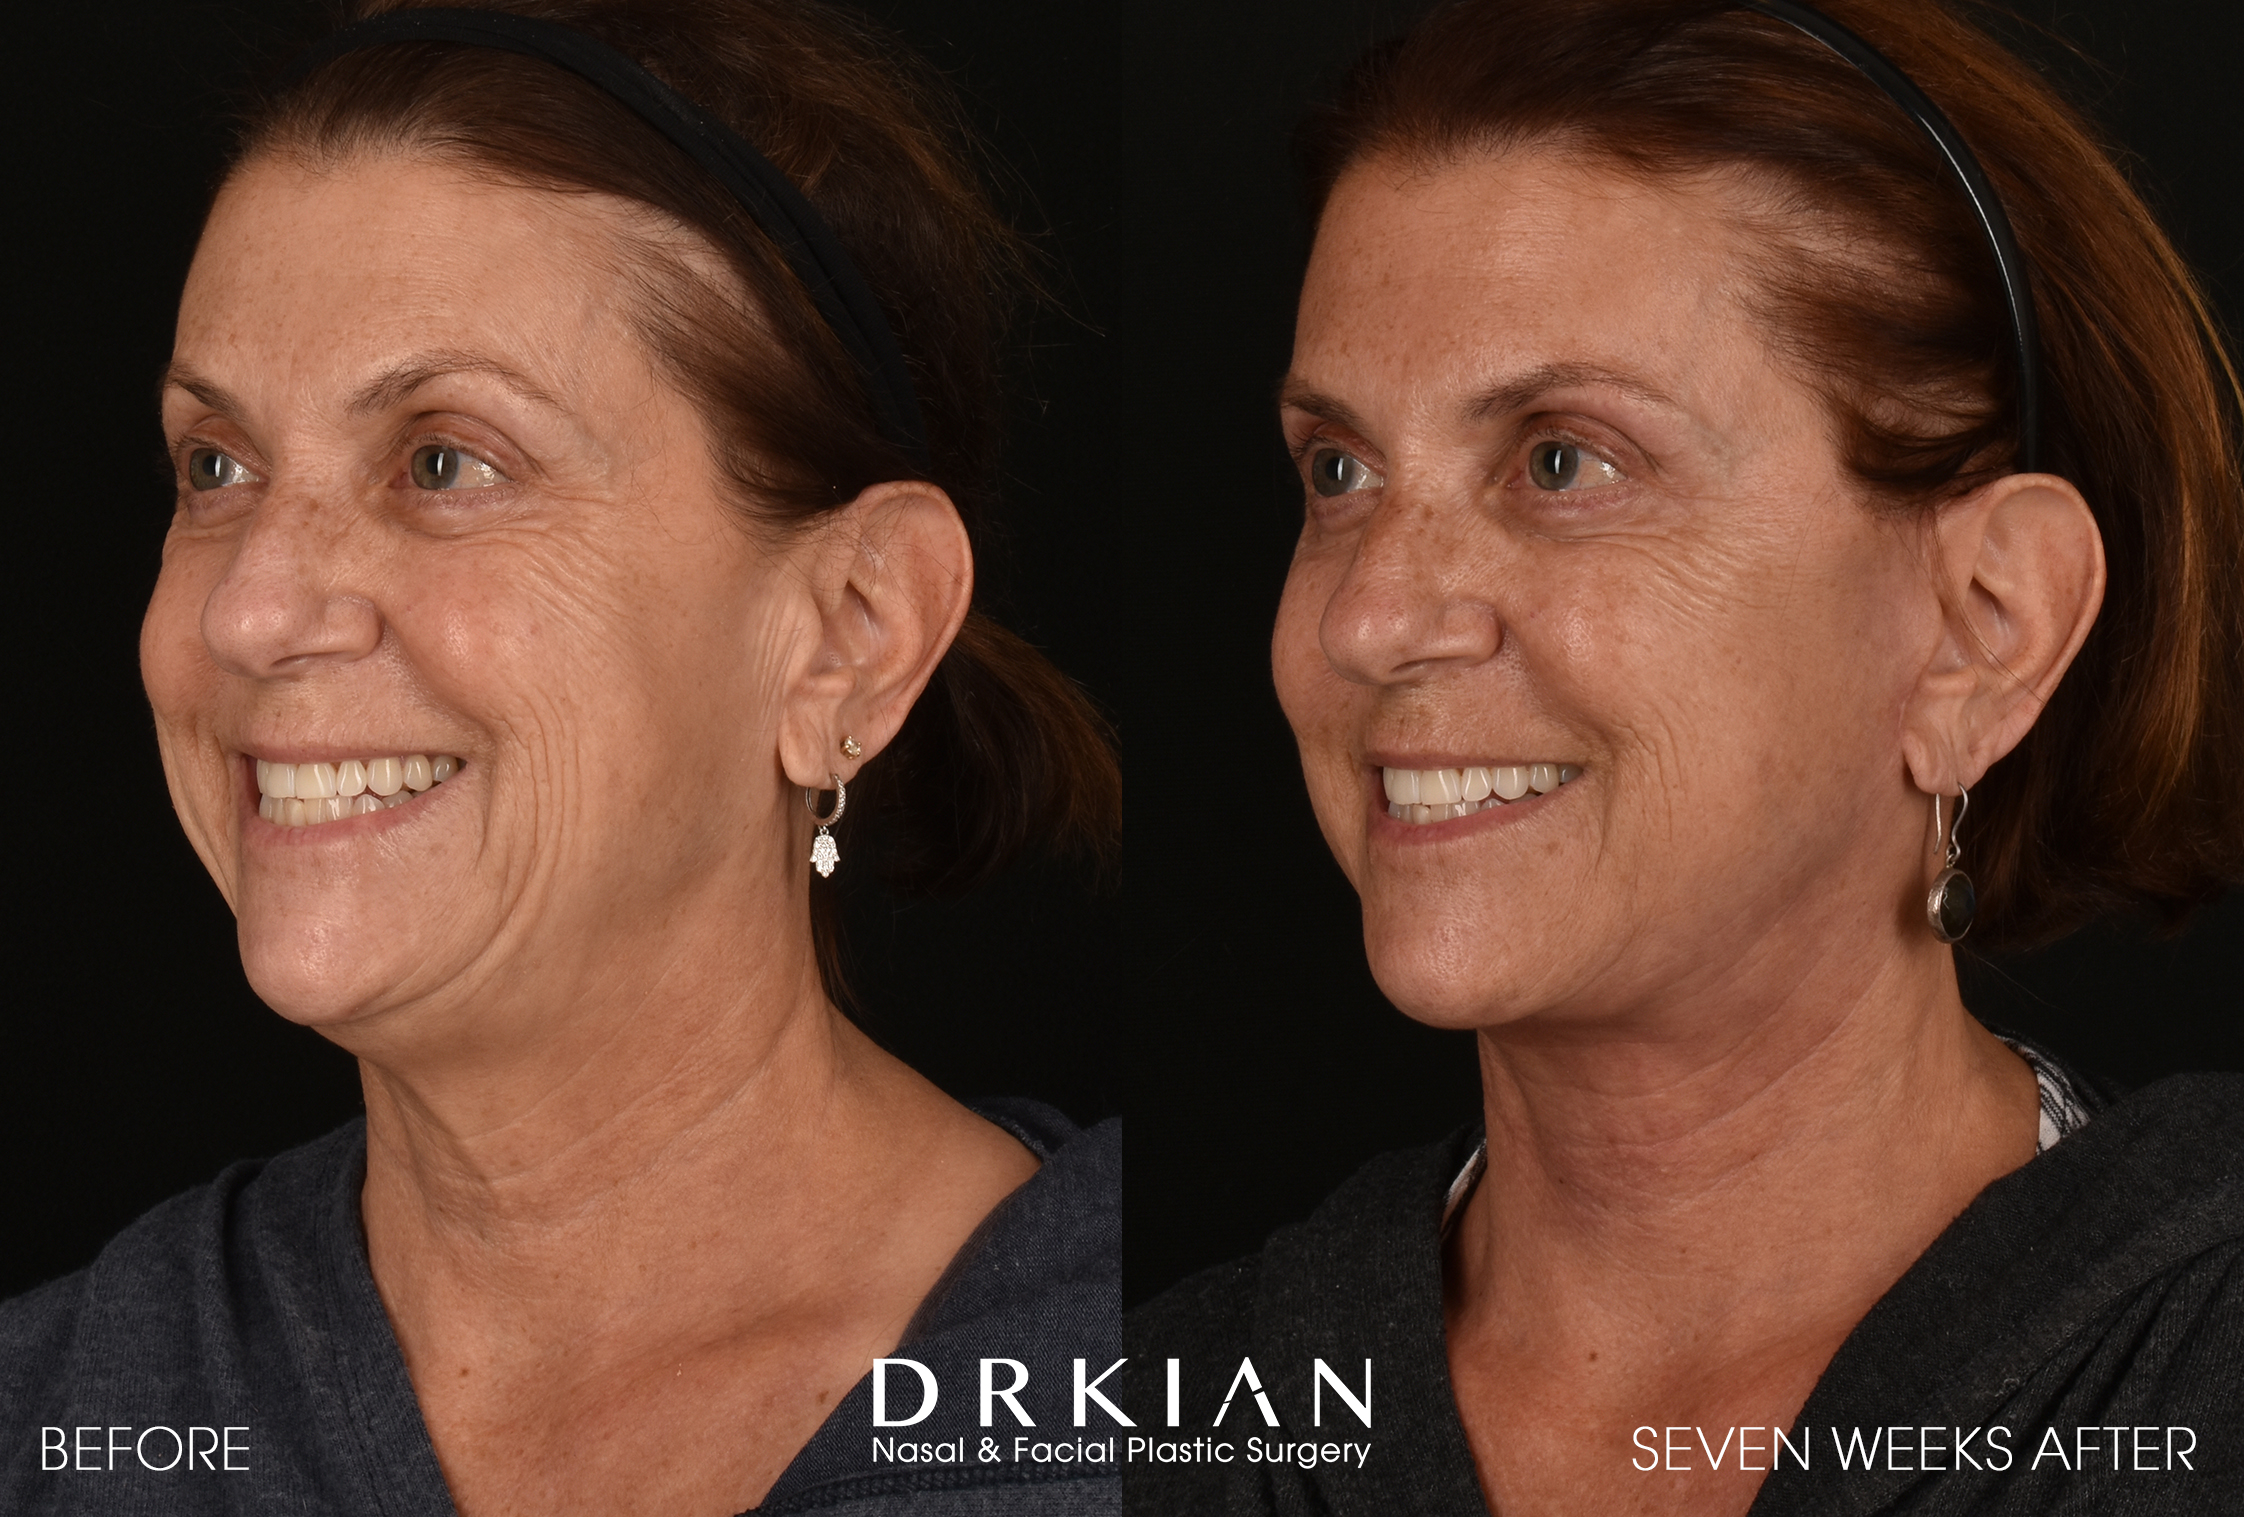 Face Lift Results at 7 Weeks